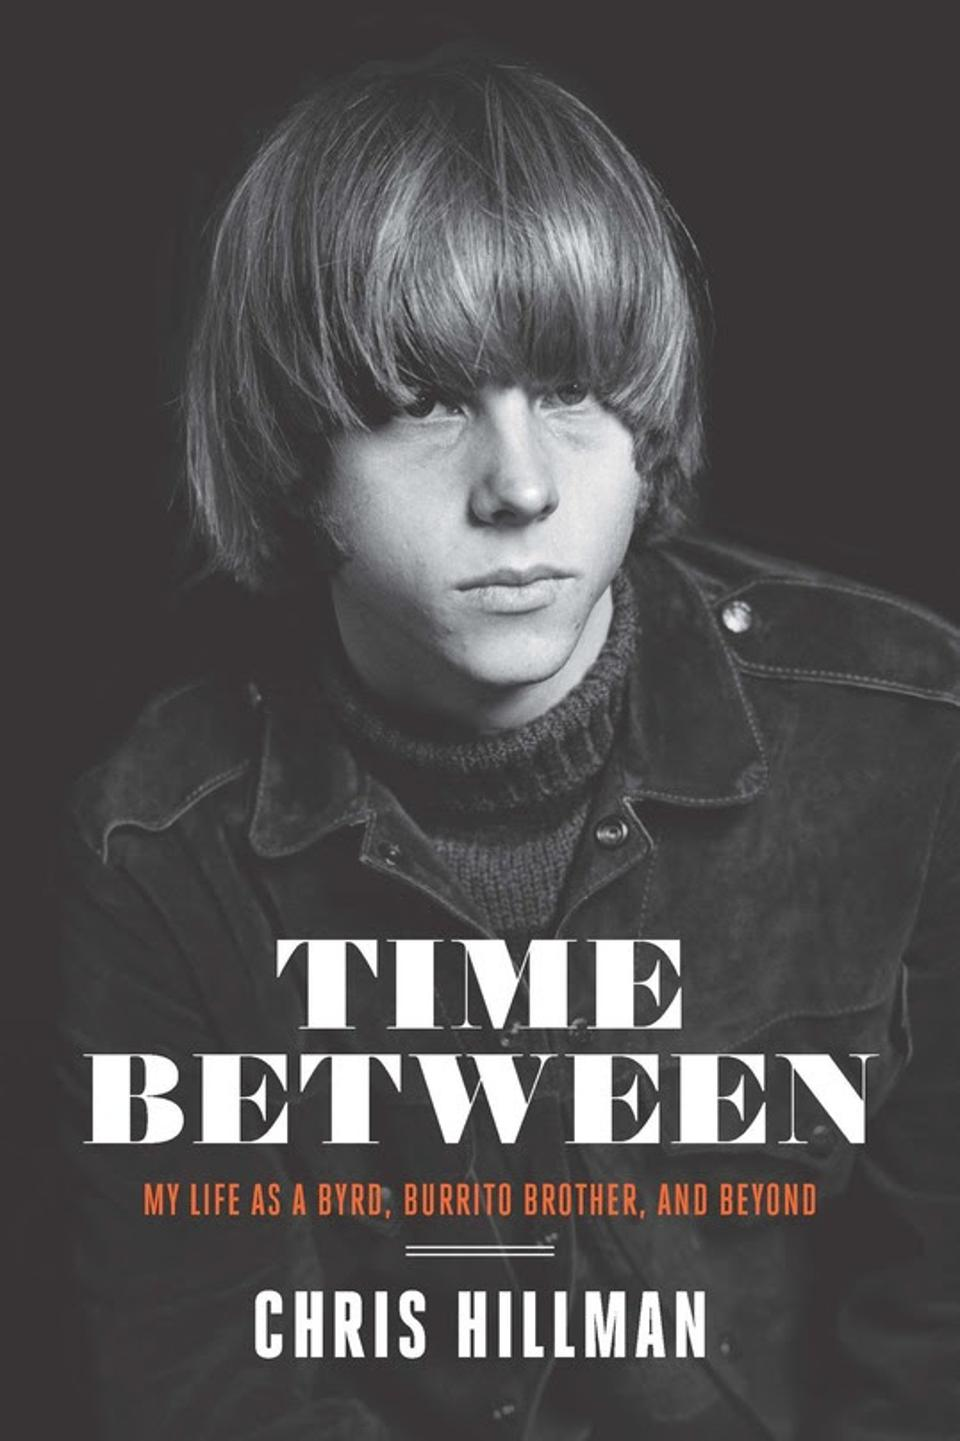 Cover of 'Time Between' by Chris Hillman.